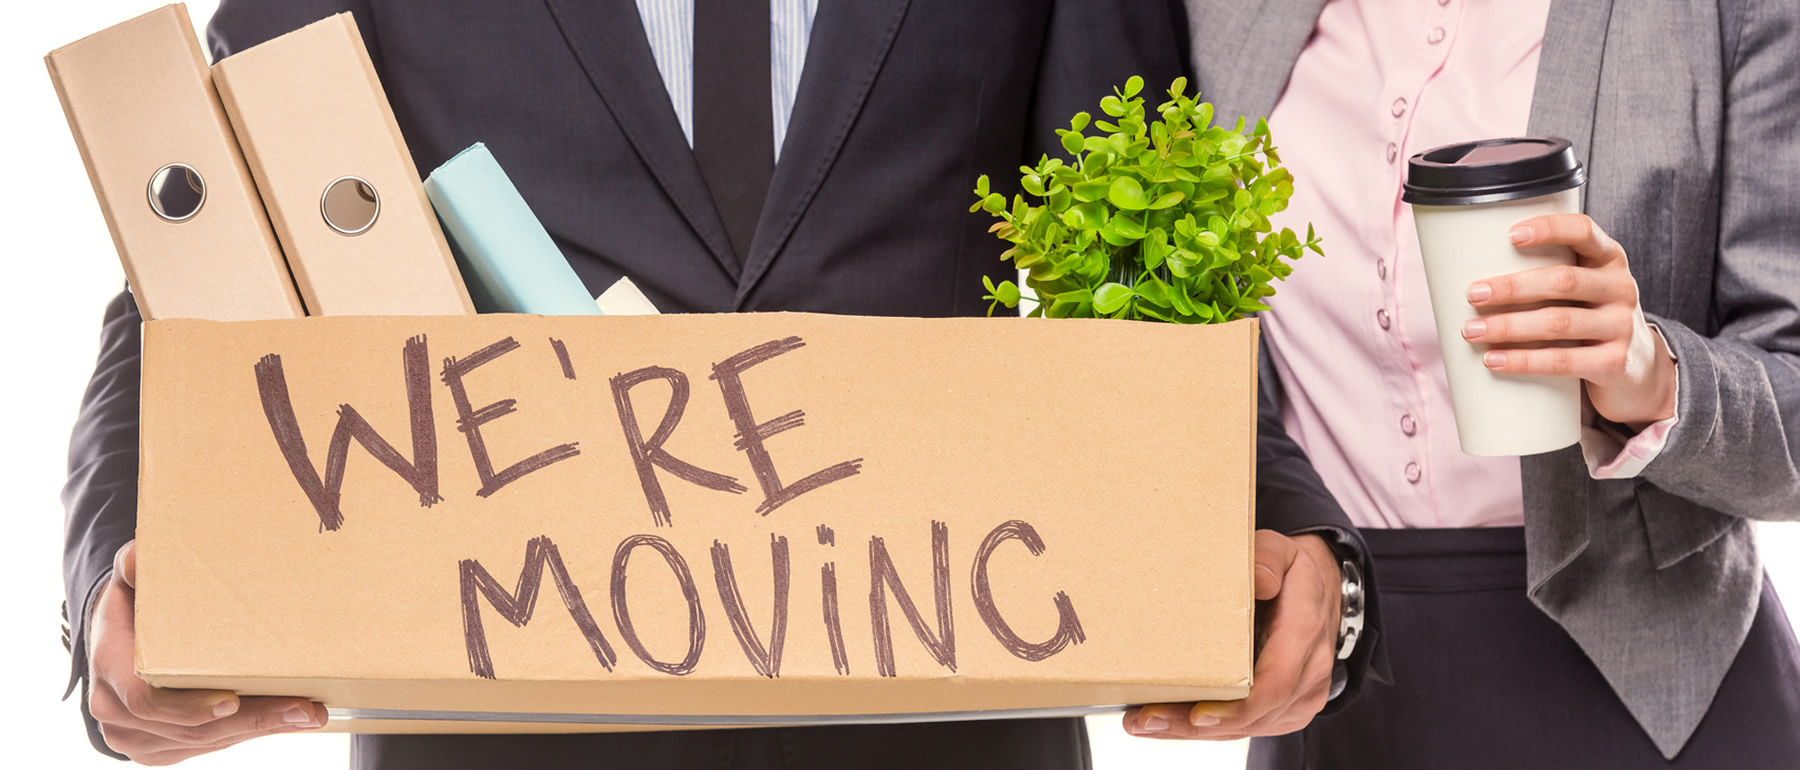 Office Moving sign